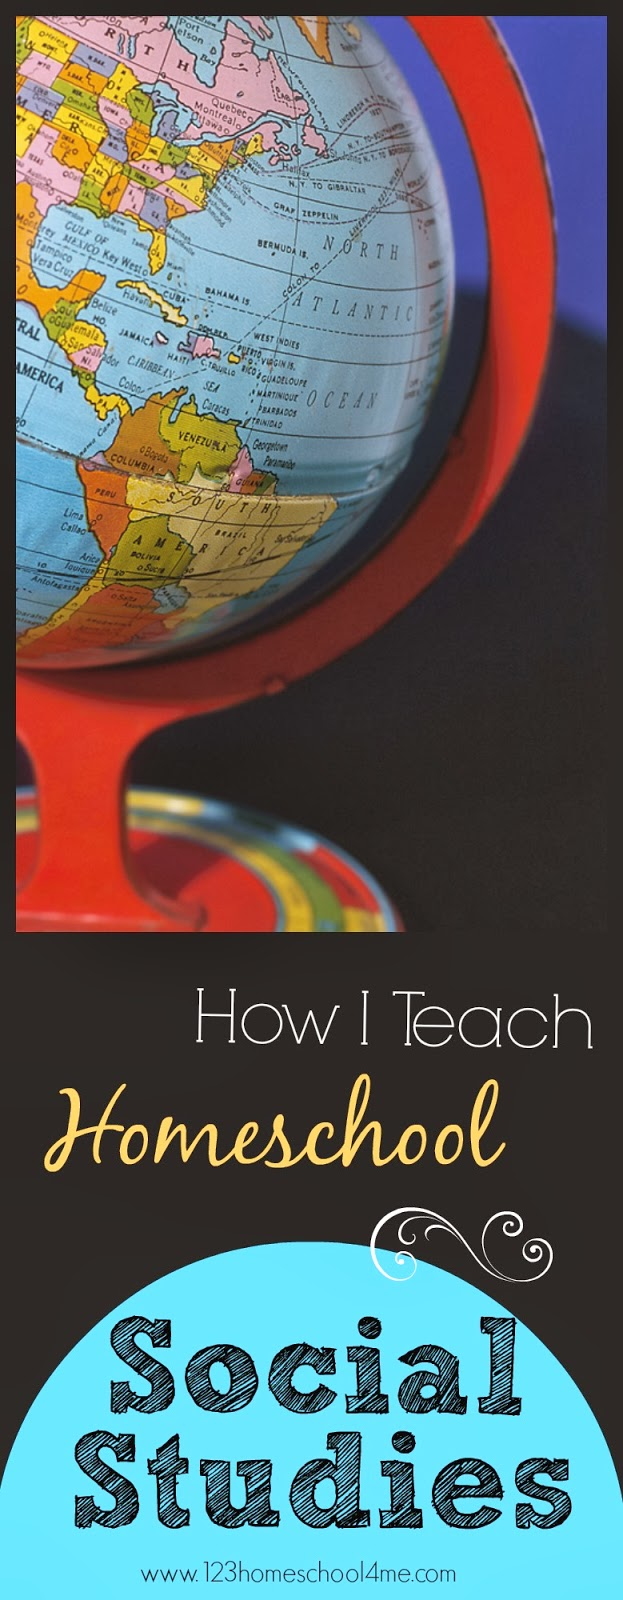 how i teach history for kids K-3rd grade #history #homeschooling